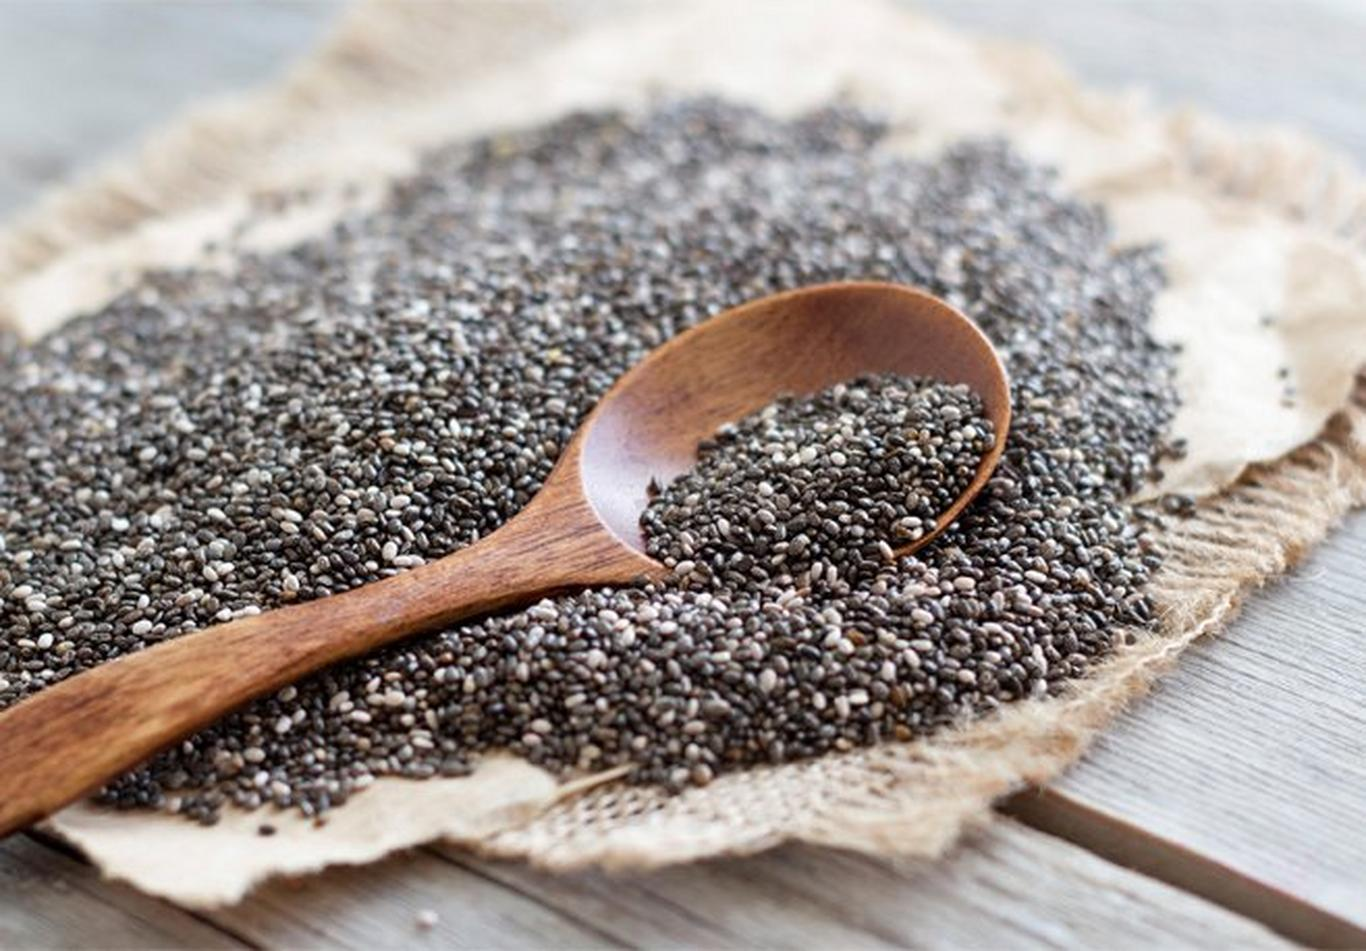 Add chia seeds to your breakfast for further energy, protein and minerals.